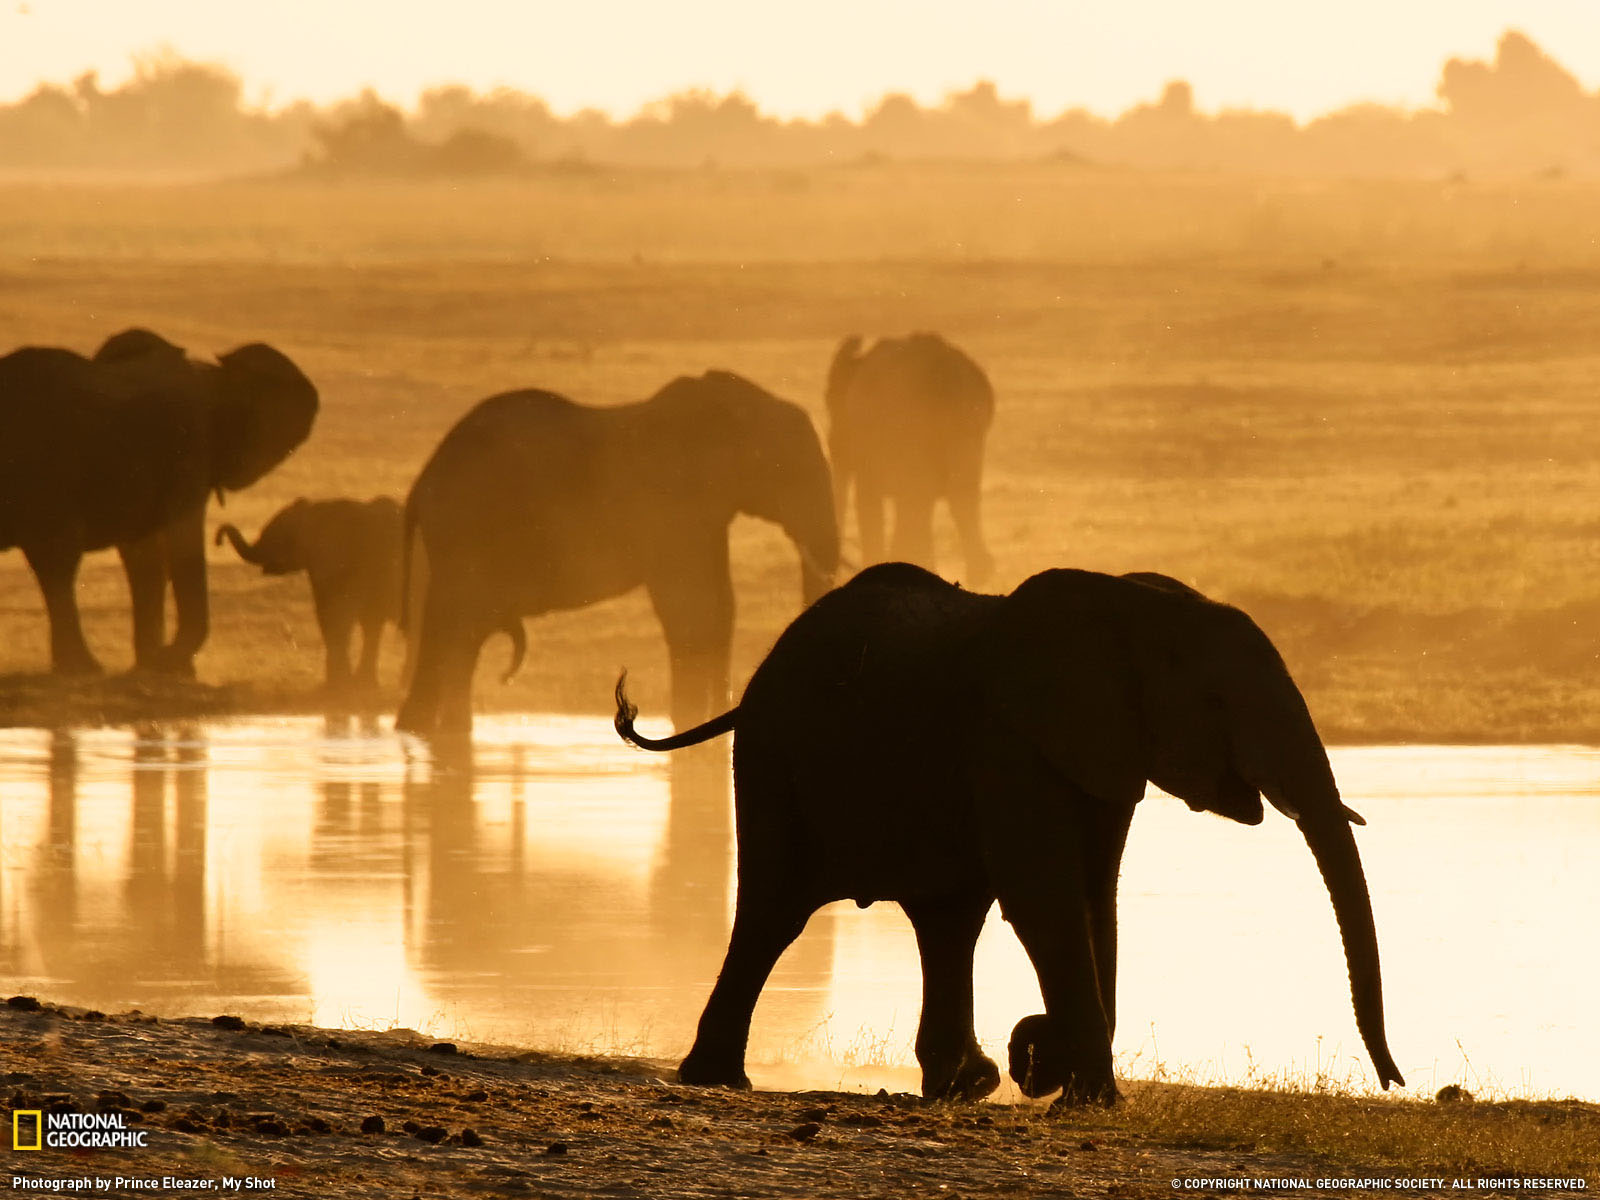 Wallpaper Backgrounds Fall Beautiful Pictures Of Elephant In Hd